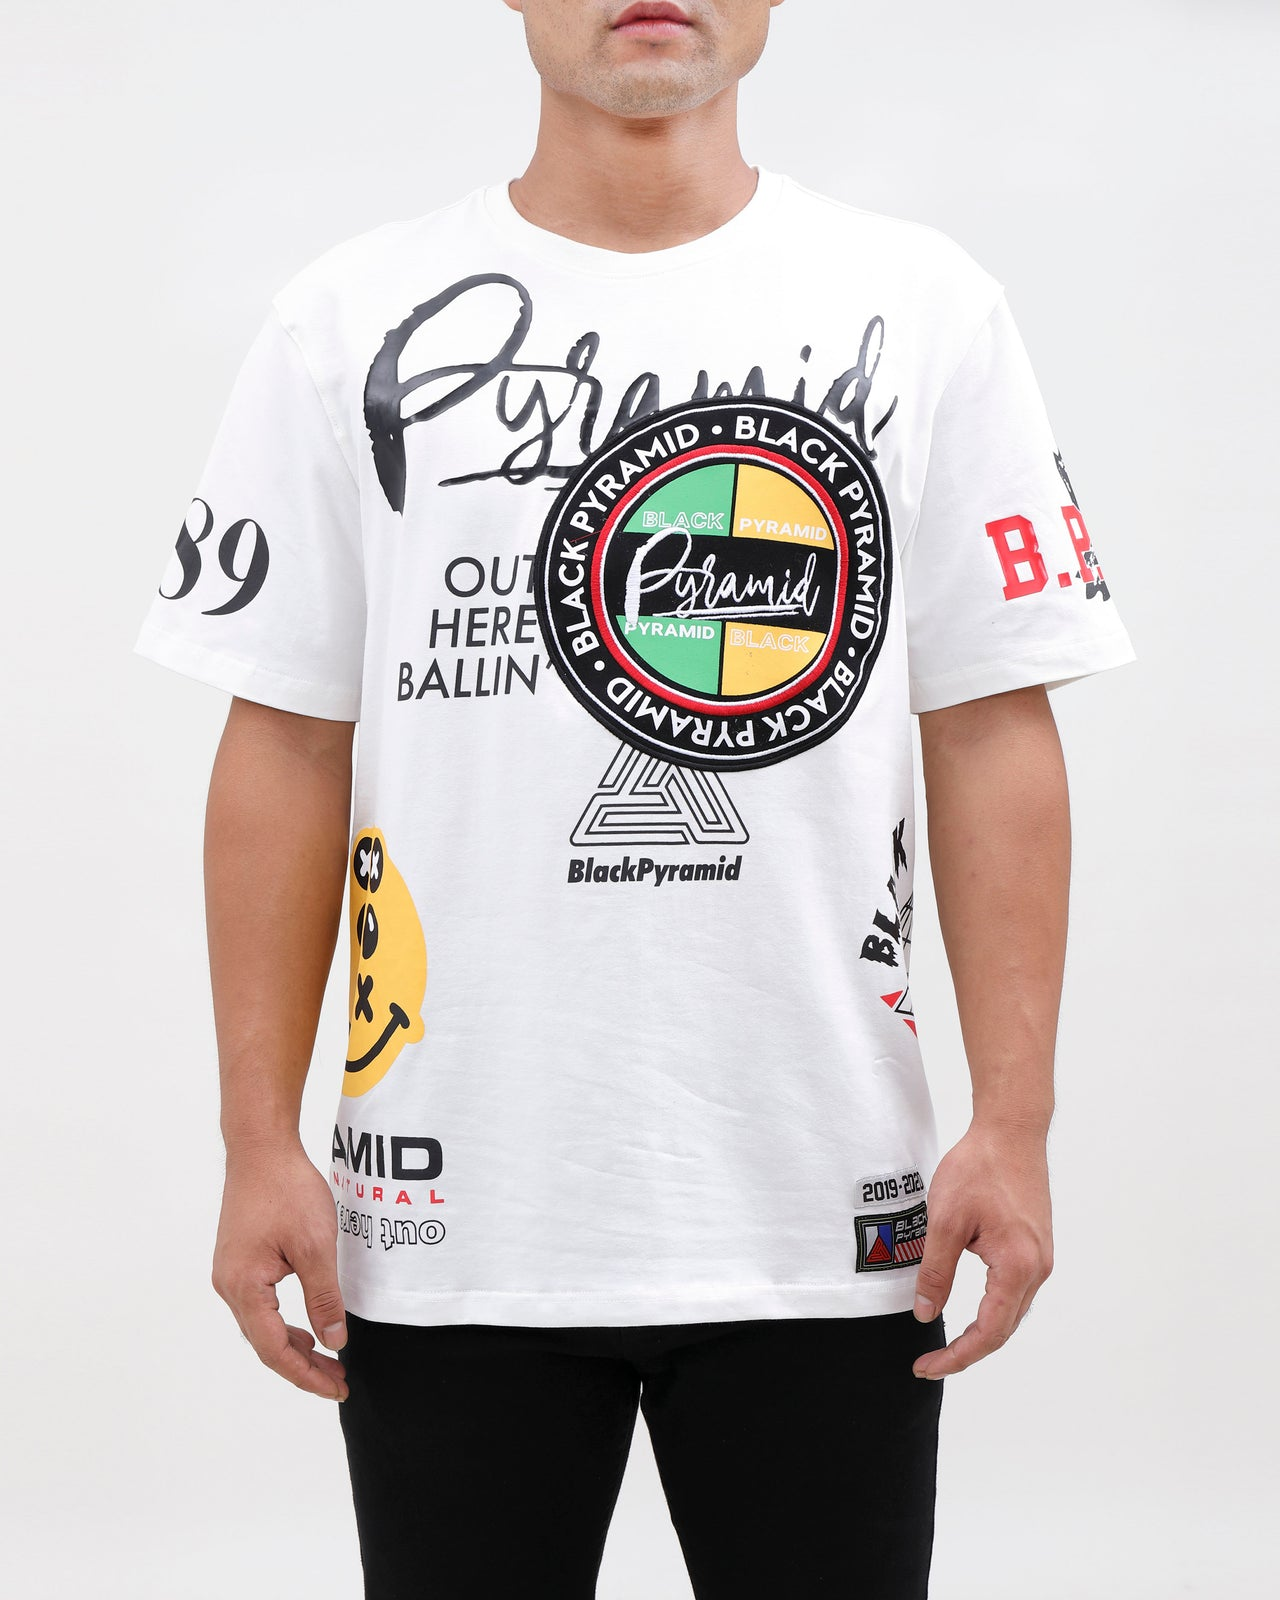 WORLD FAMOUS LOGOS SHIRT-COLOR: WHITE